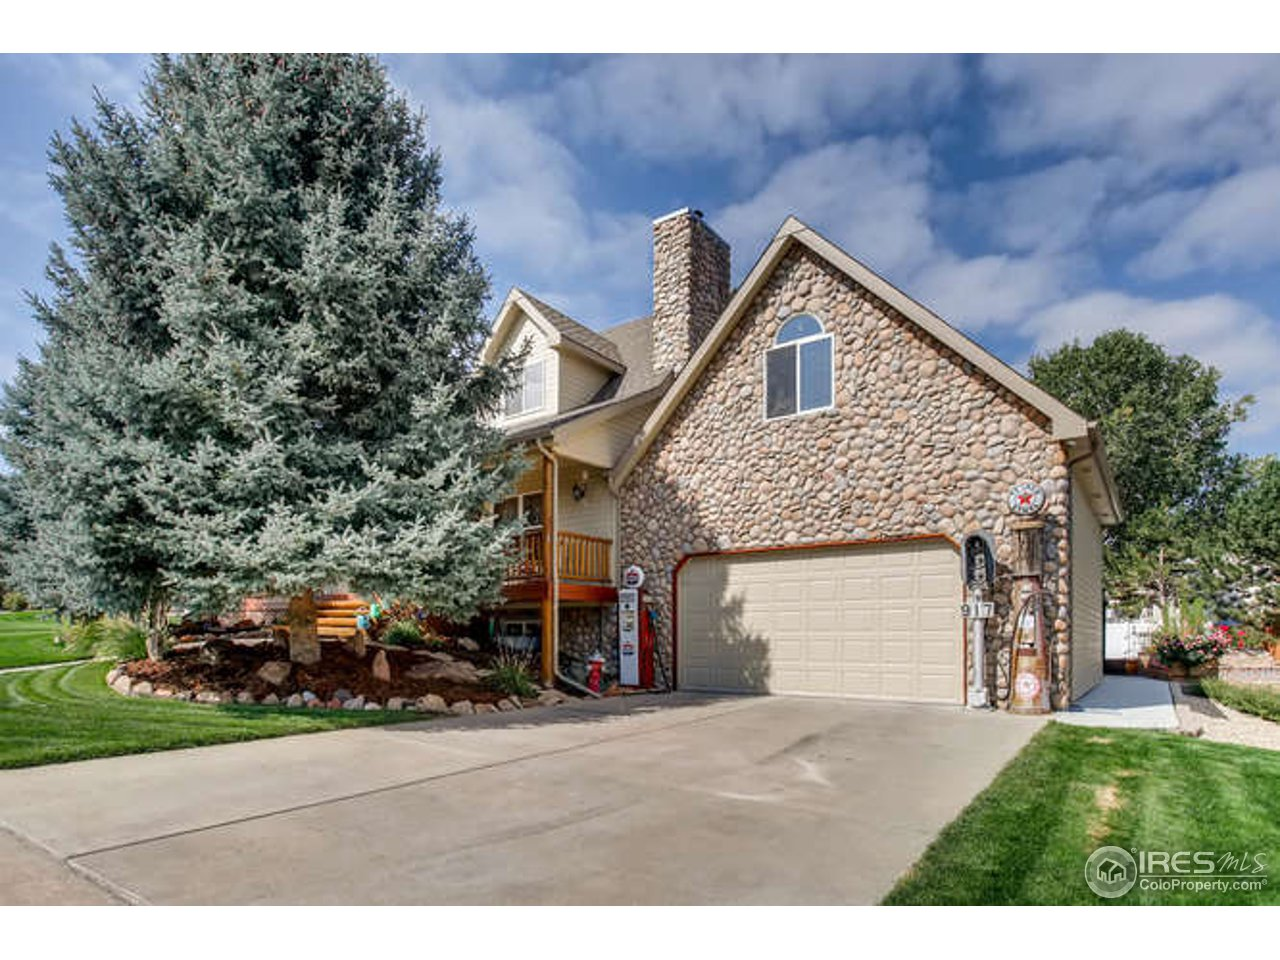 917 52nd Ave, Greeley CO 80634